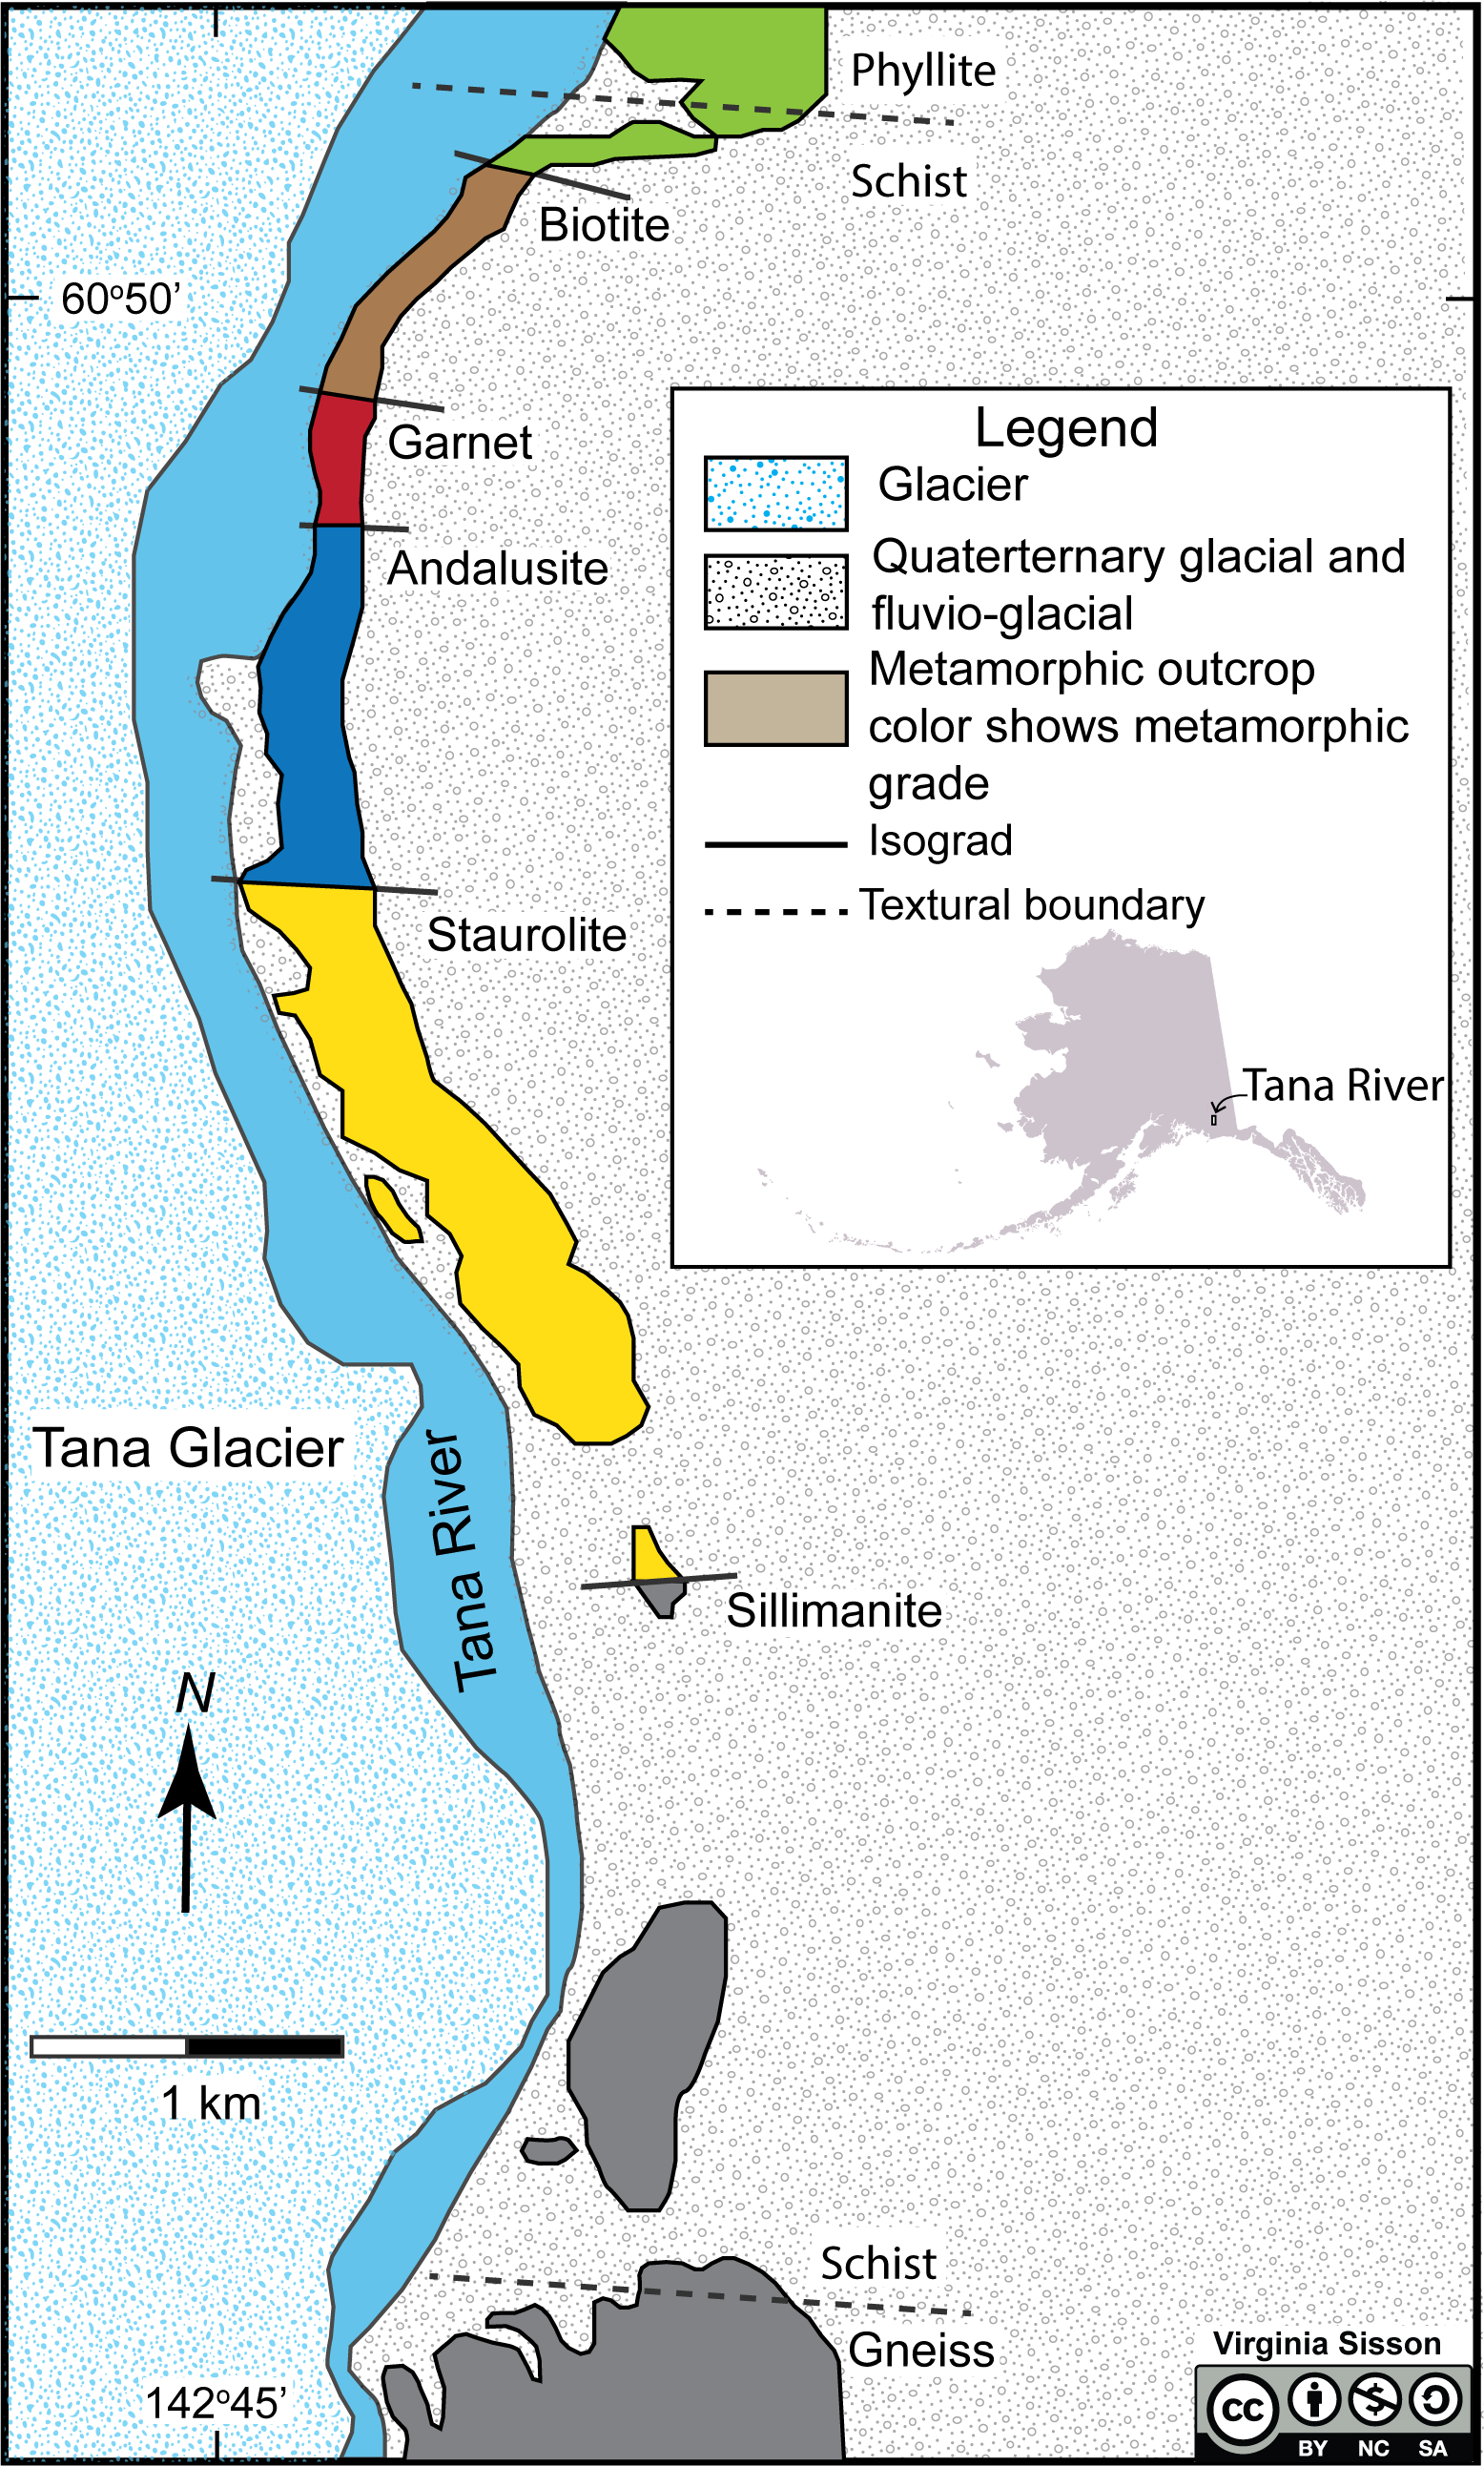 This maps shows the metamorphic zones and textures of southern Alaska.